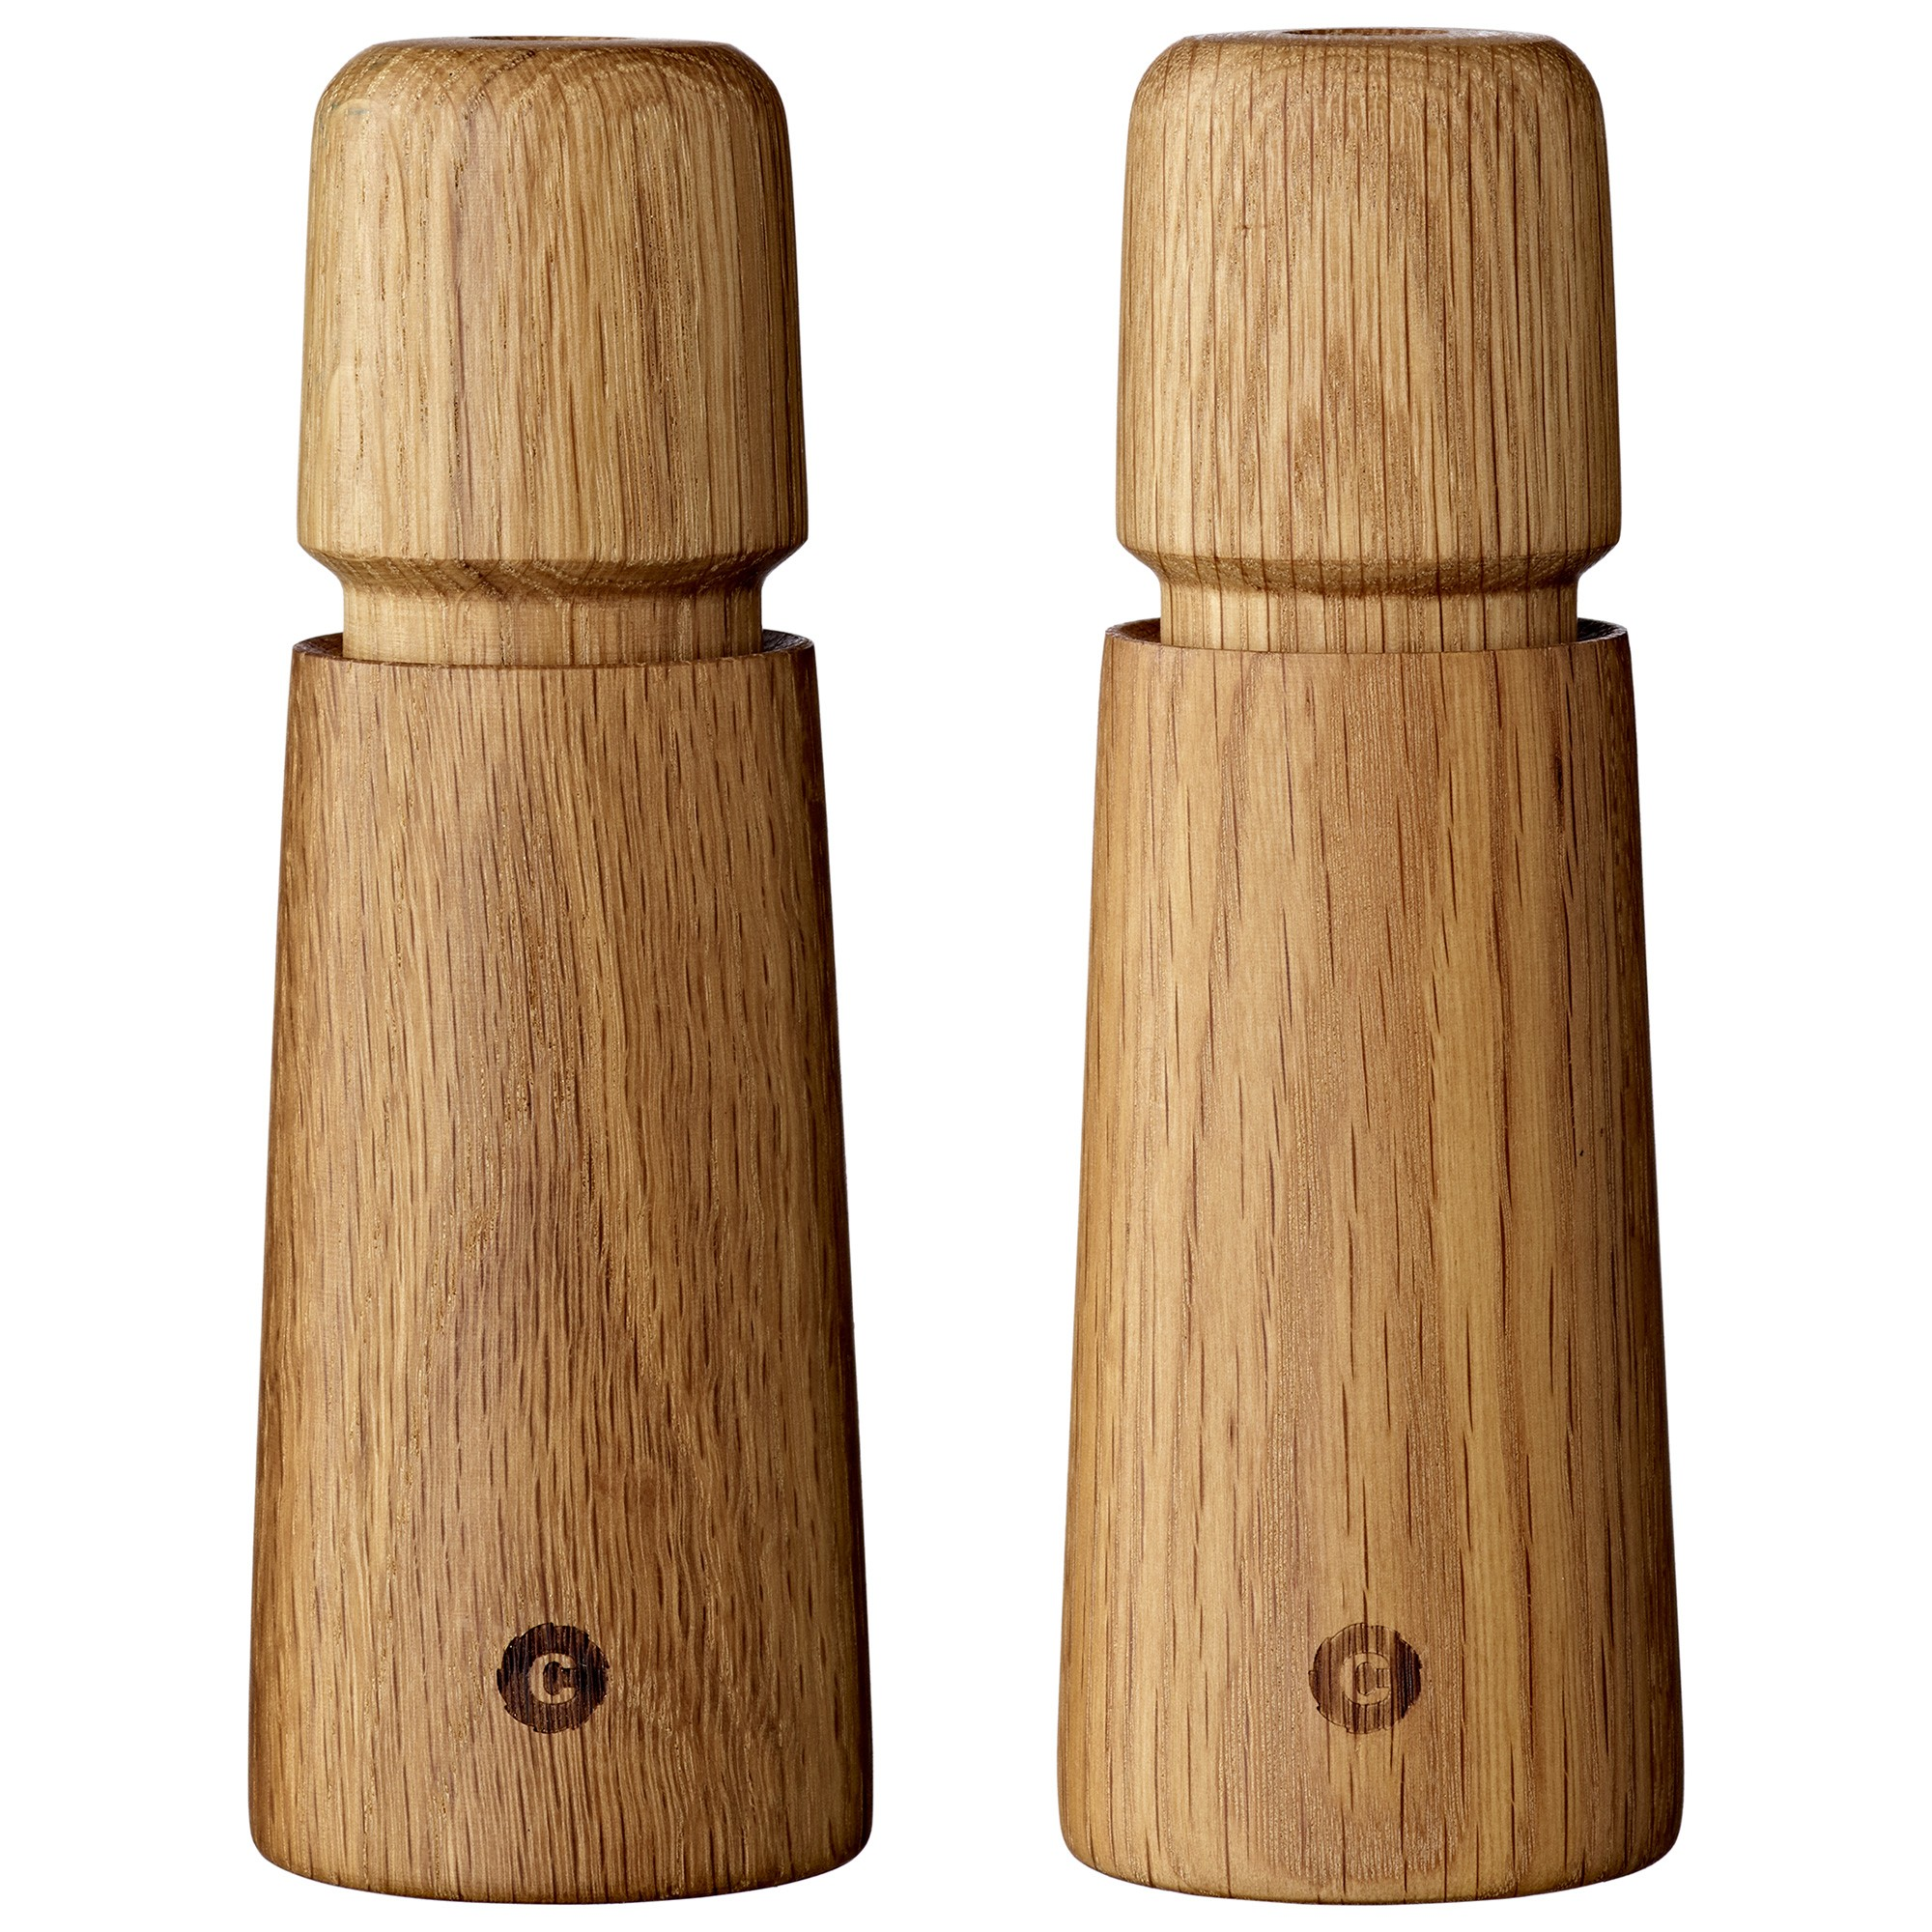 Stockholm 2 Piece Wooden Salt & Pepper Mill Set, Oak